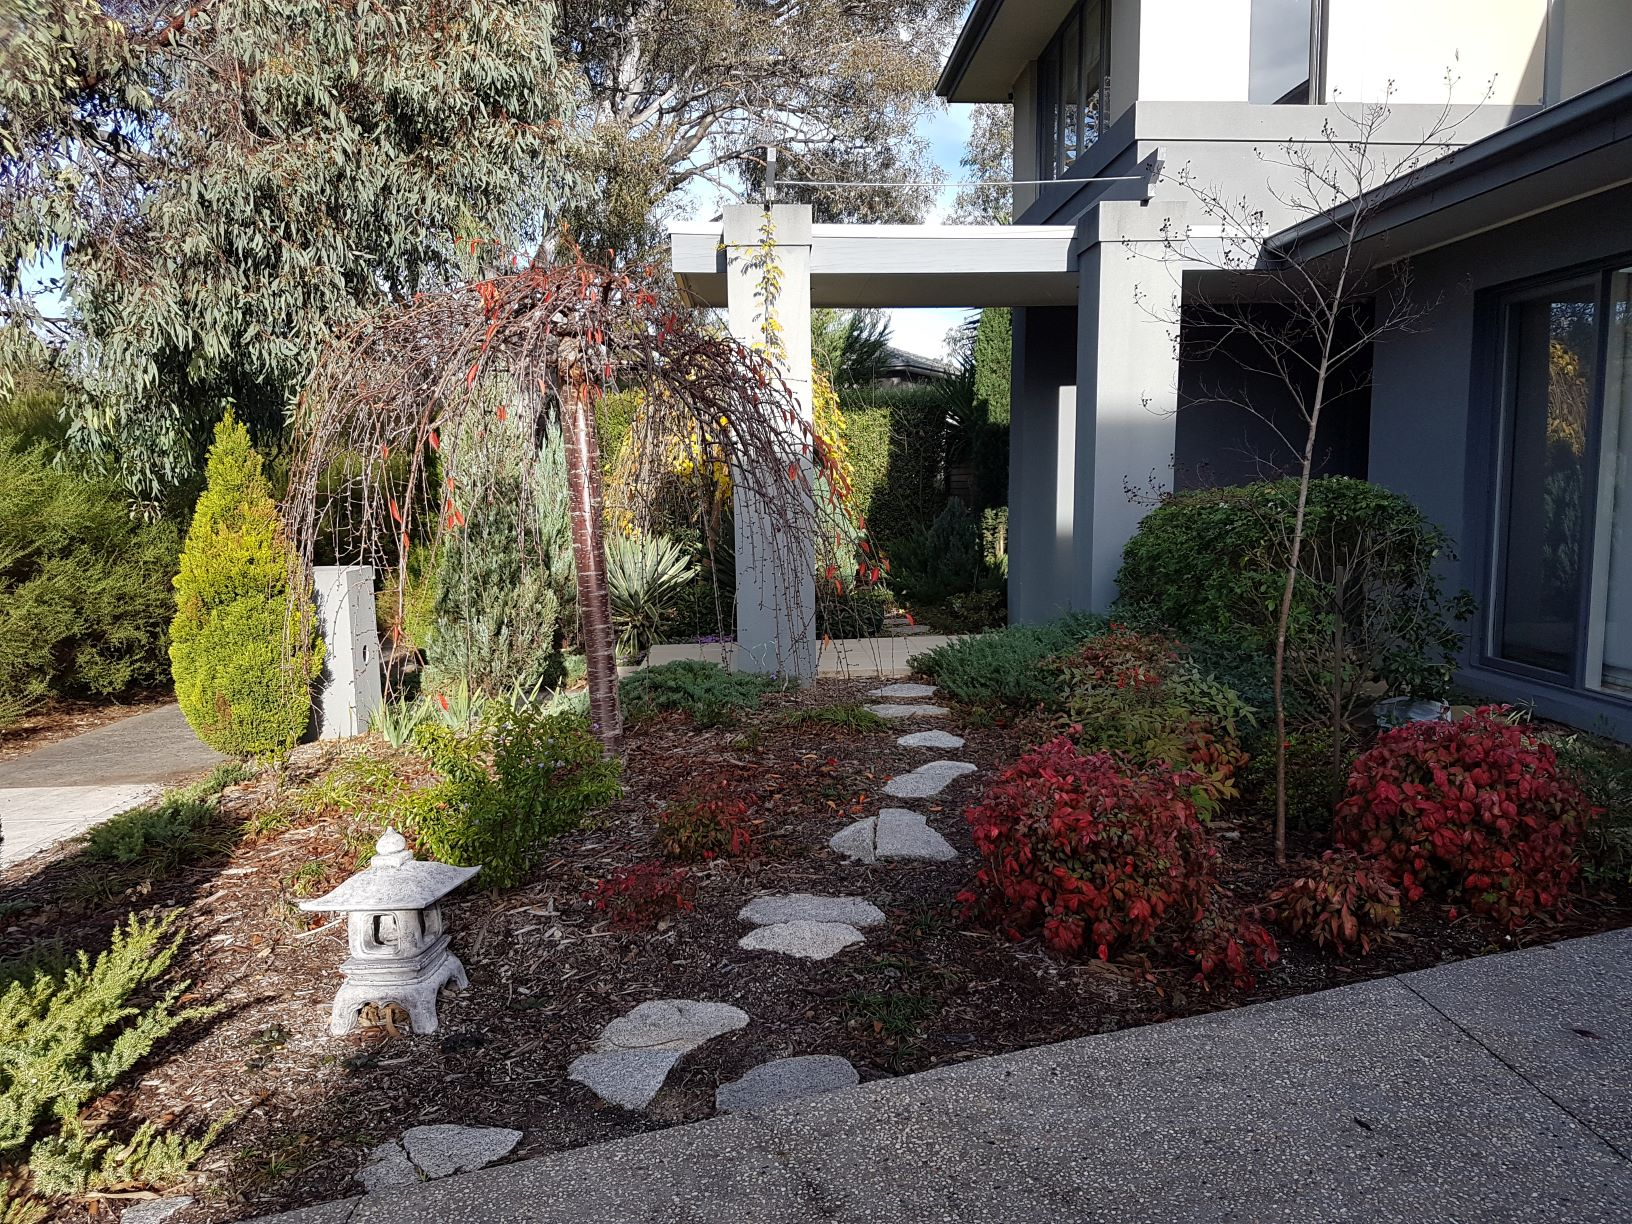 Granitic stone, Granitic stone stepping pavers, Asian style garden, Macleod garden,